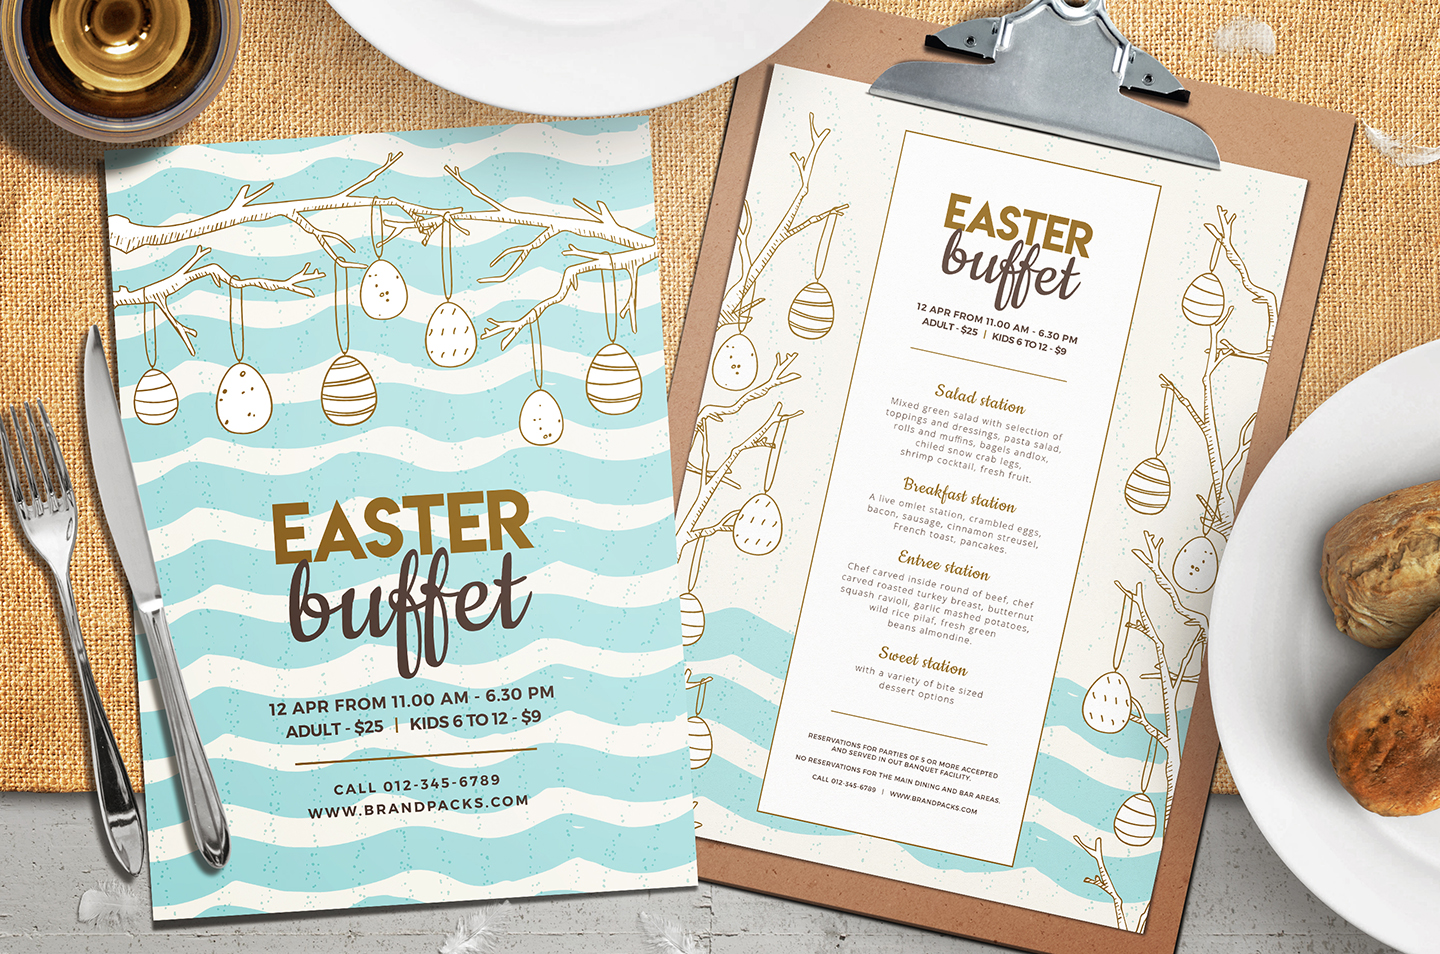 Beautiful easter menu templates and designs musthavemenus.